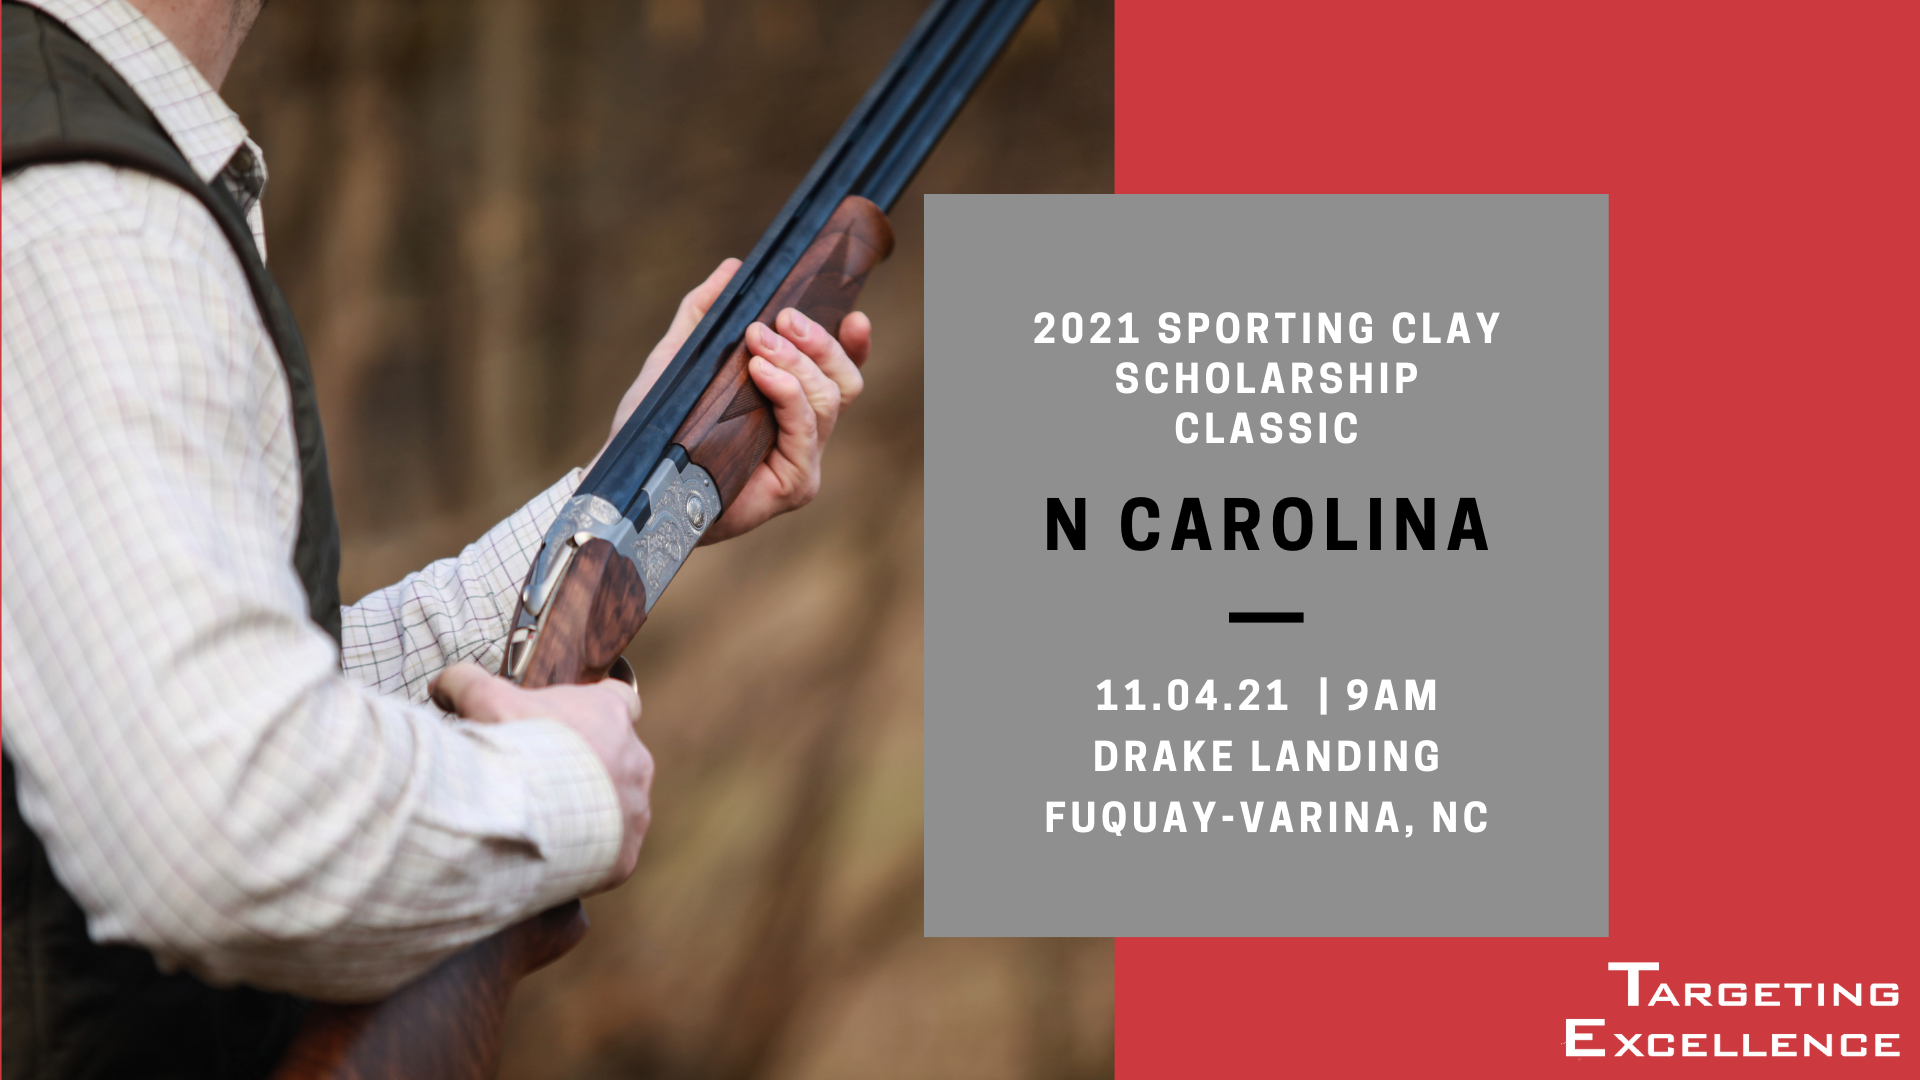 2021 N Carolina Targeting Excellence Sporting Clay Scholarship Classic